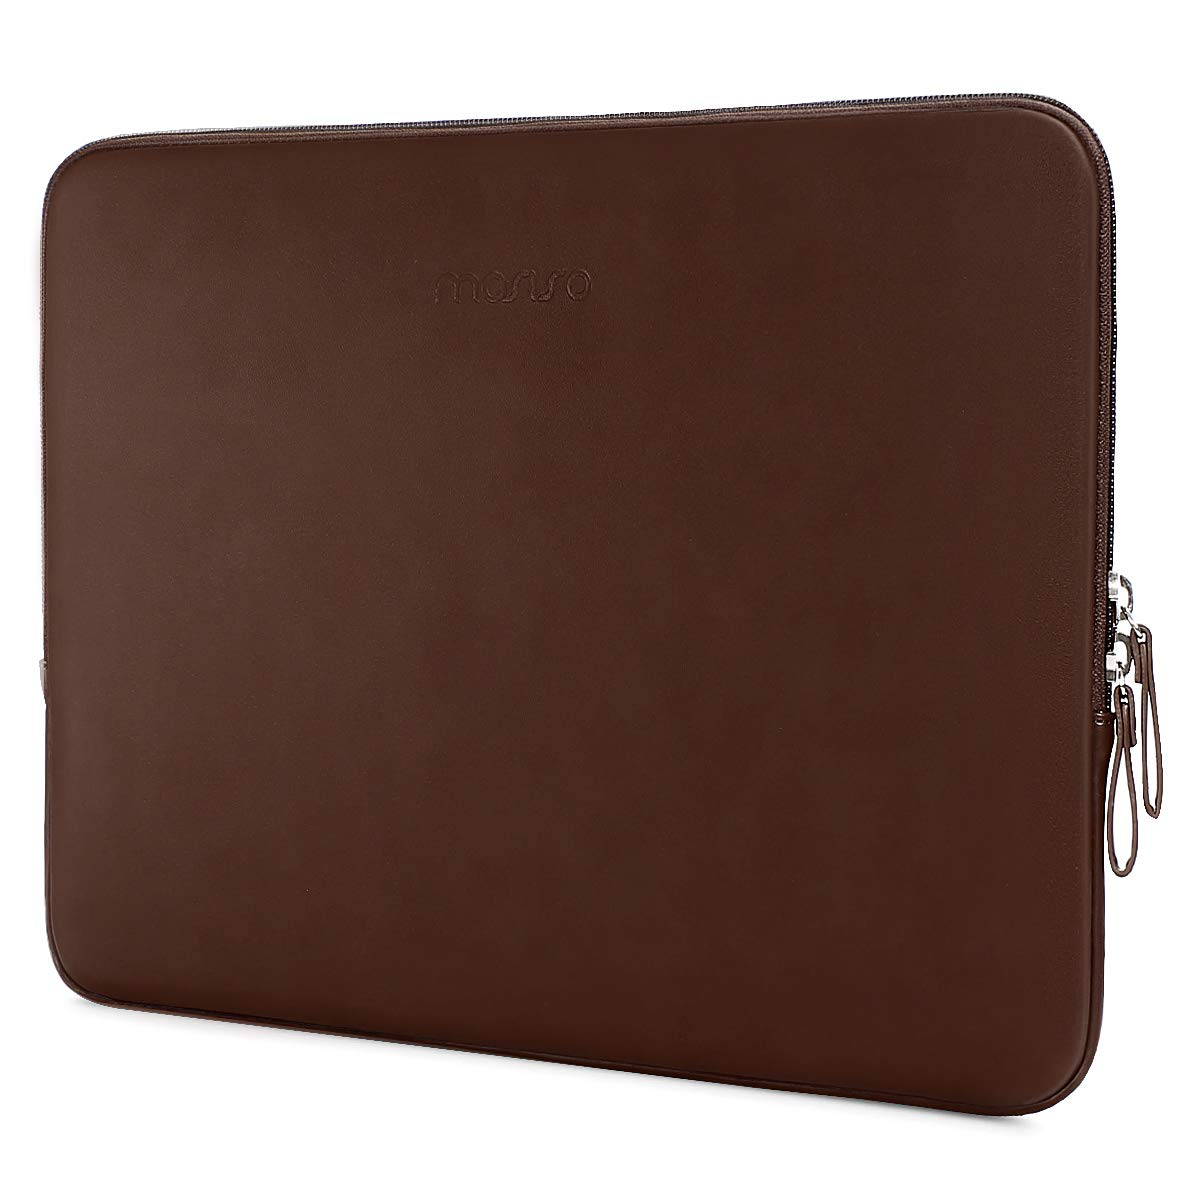 MOSISO Laptop Sleeve Compatible 13-13.3 Inch MacBook Pro Retina/MacBook Air/Surface Laptop 2 2018 2017/Surface Book, PU Leather Super Padded Bag Waterproof Protective Case, Coffee Brown